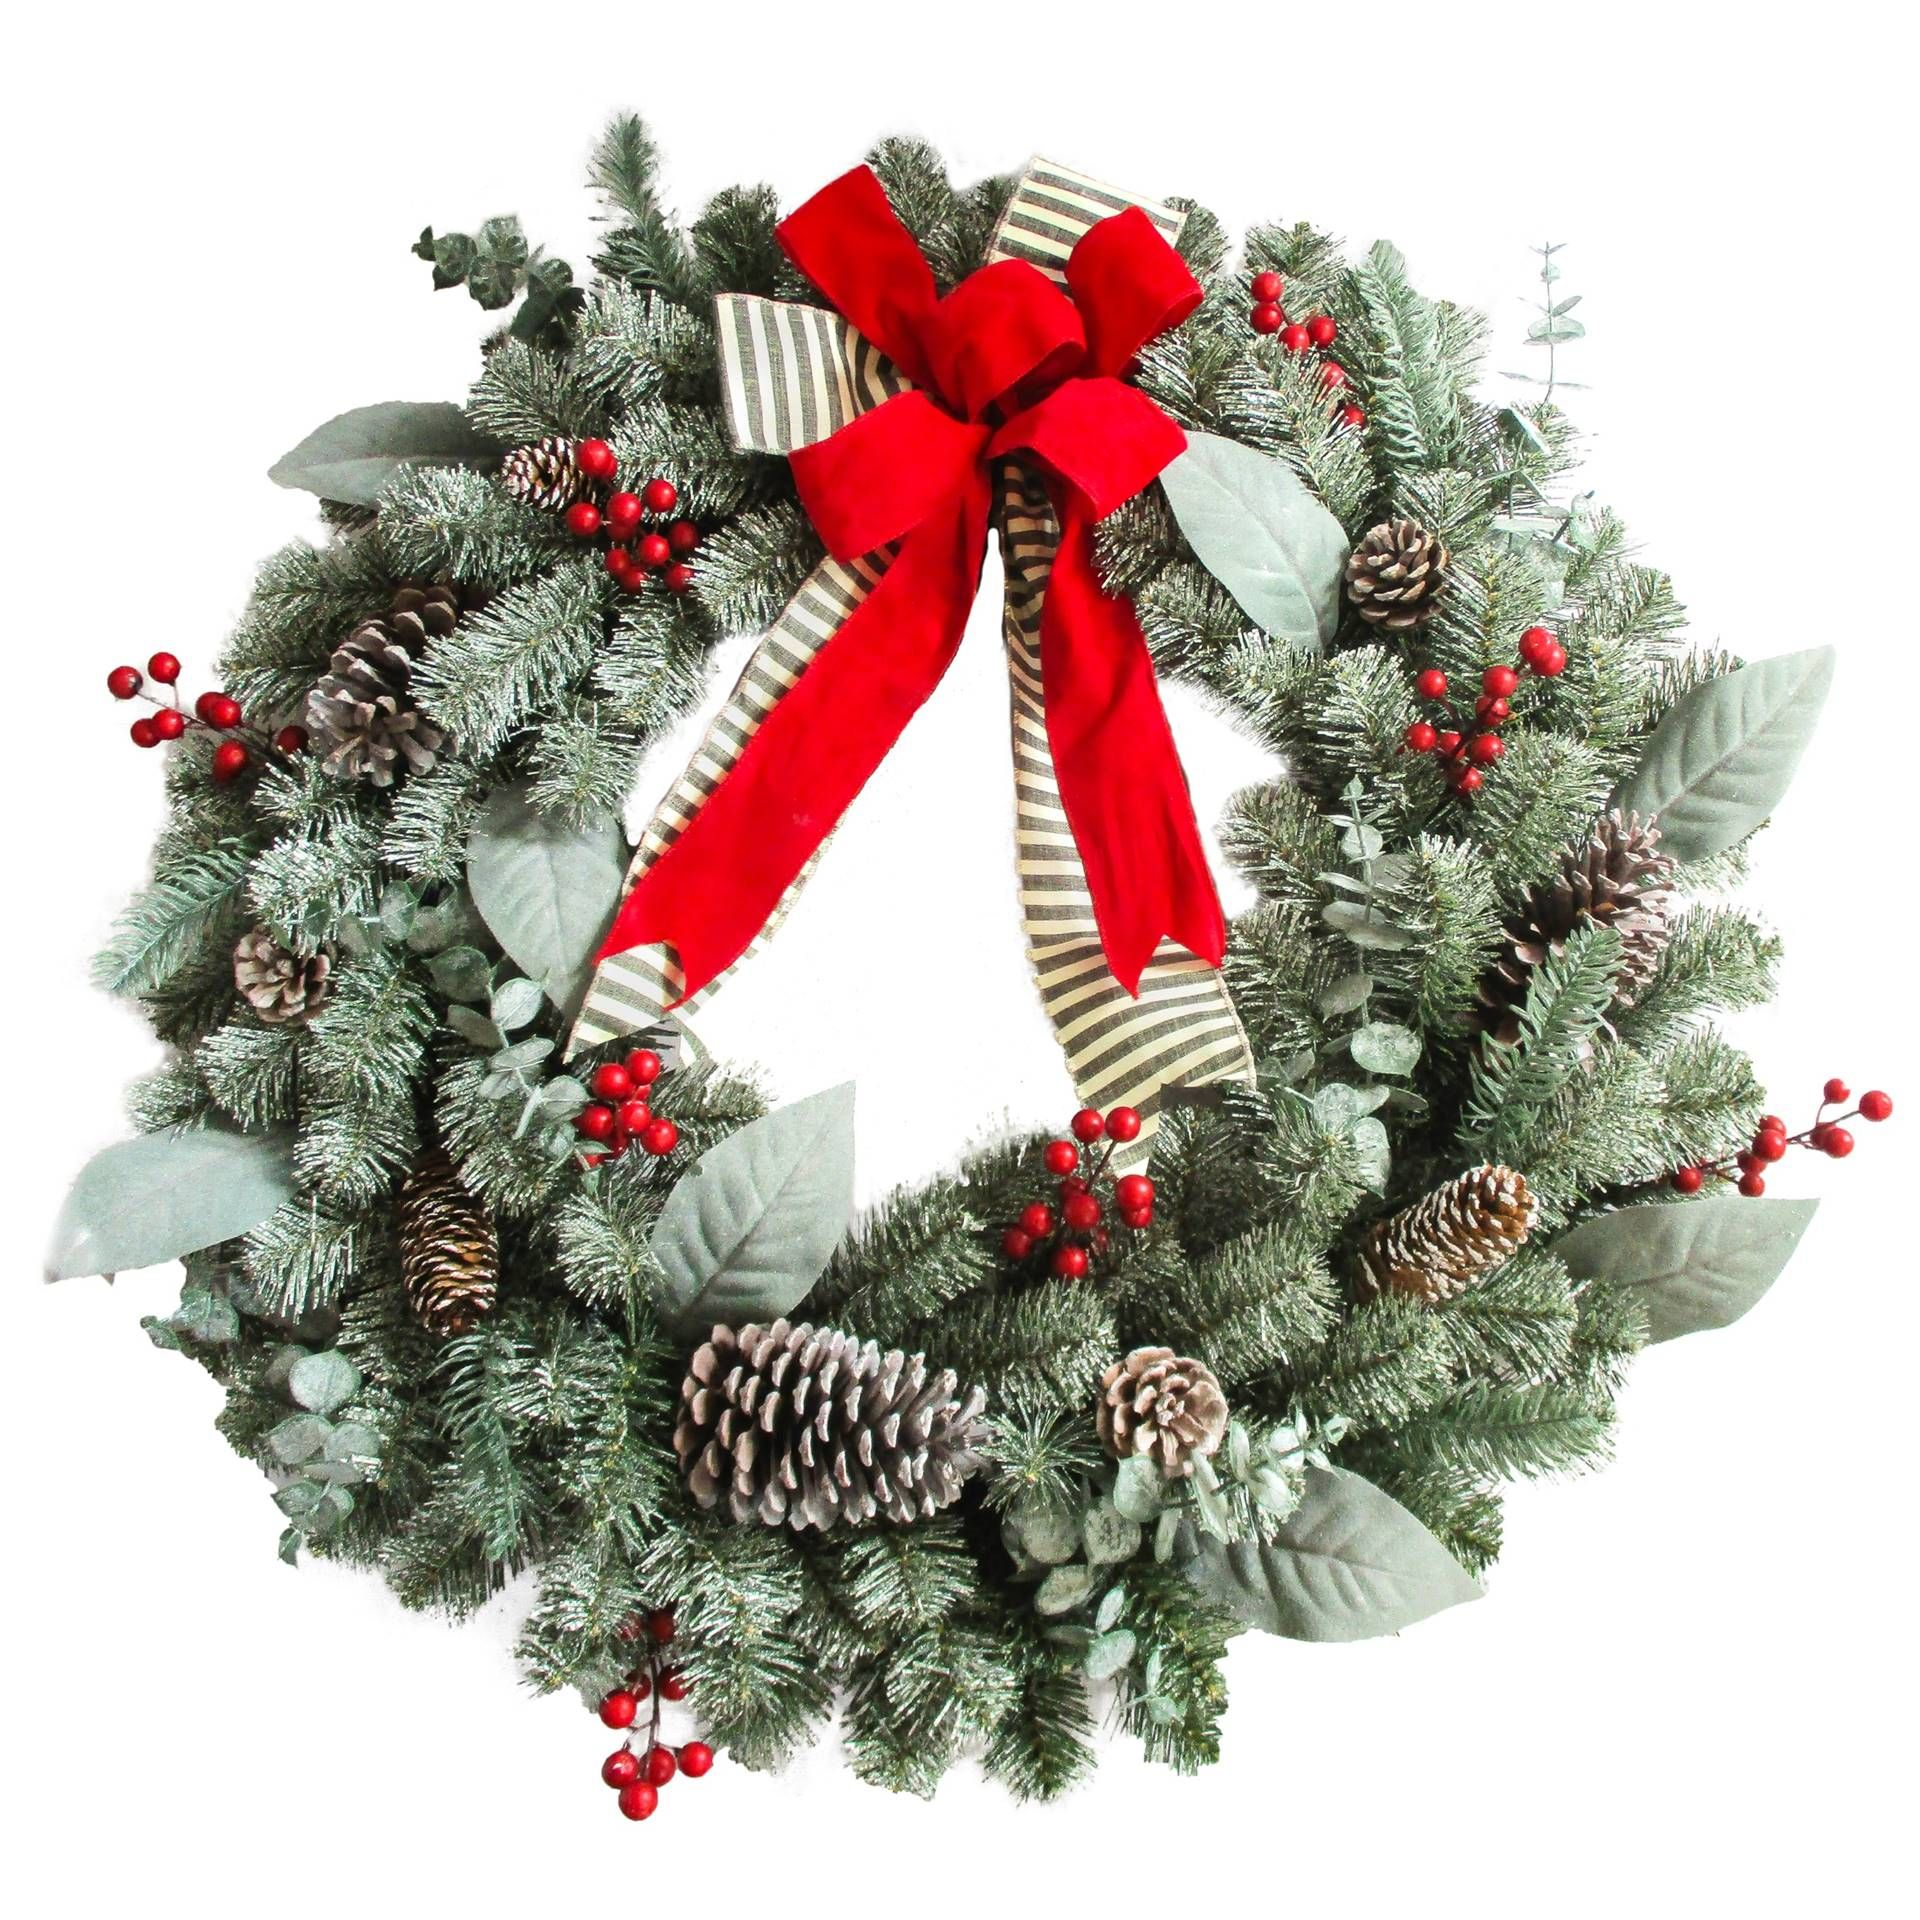 60 Best Christmas Door Wreath Ideas 2017 - Decorating with Christmas Wreaths